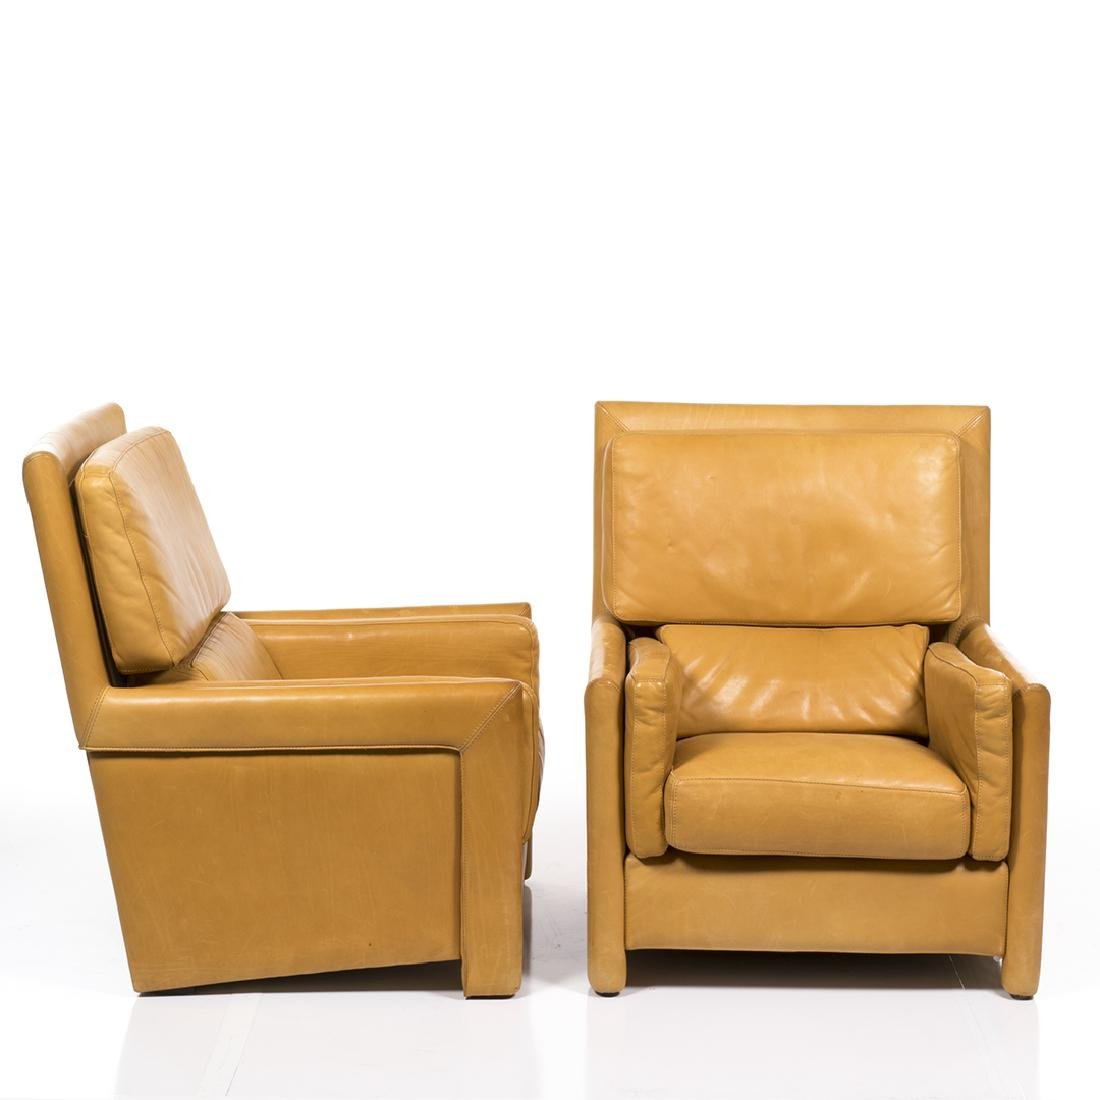 Roche Bobois Leather Club Chairs (2) - 2